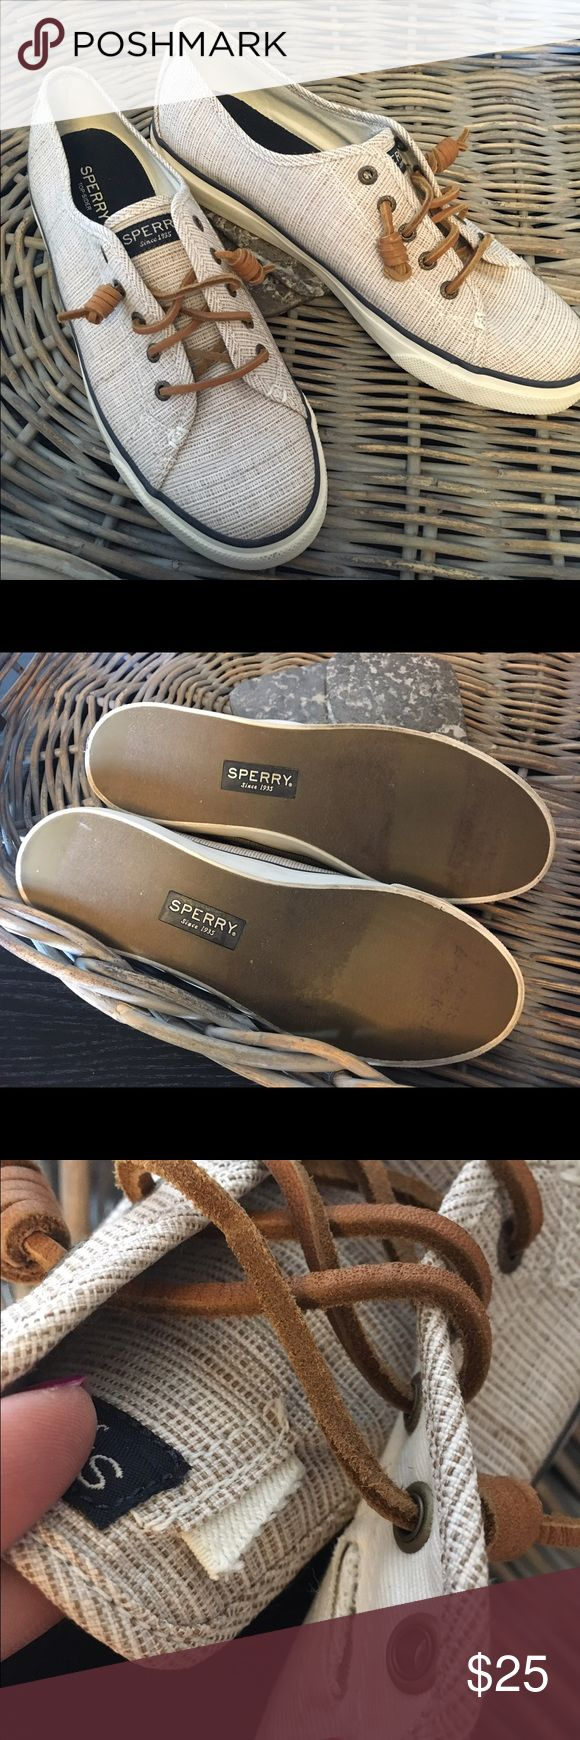 Sperry dock shoes sneakers Preowned great condition. The elastic on either side of each tongue is cut. I assume this means they are a bit looser than a new pair. Sperry Top-Sider Shoes Sneakers